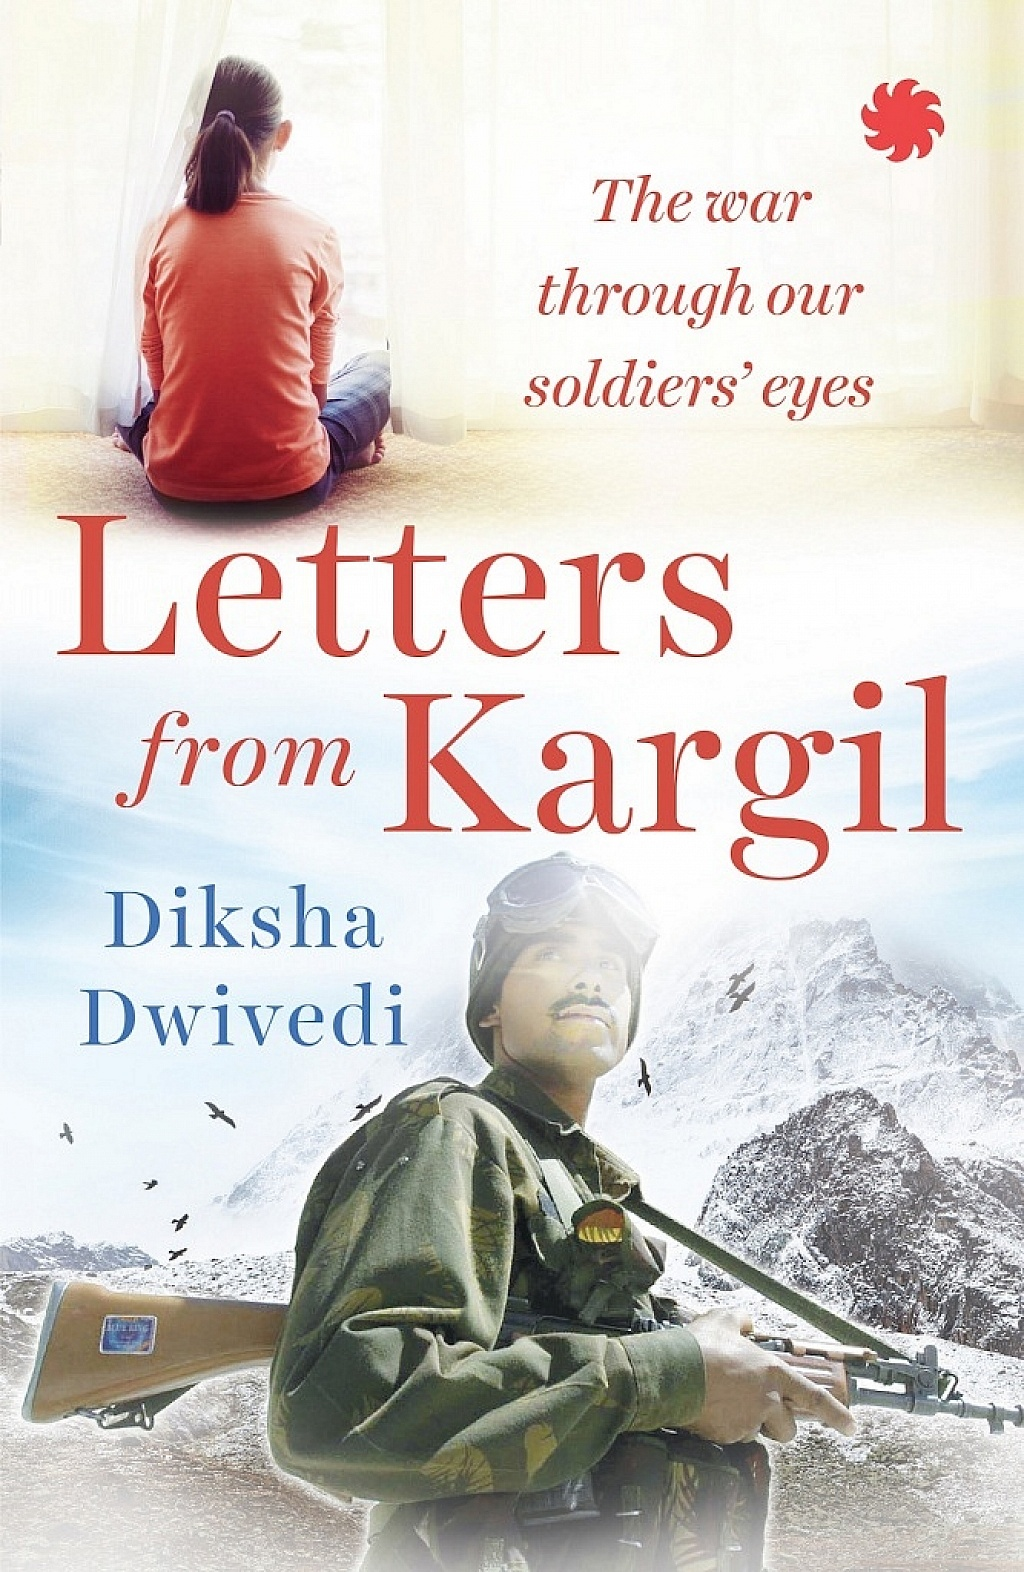 LettersFromKargil Quiz: How Much Do You Know About the